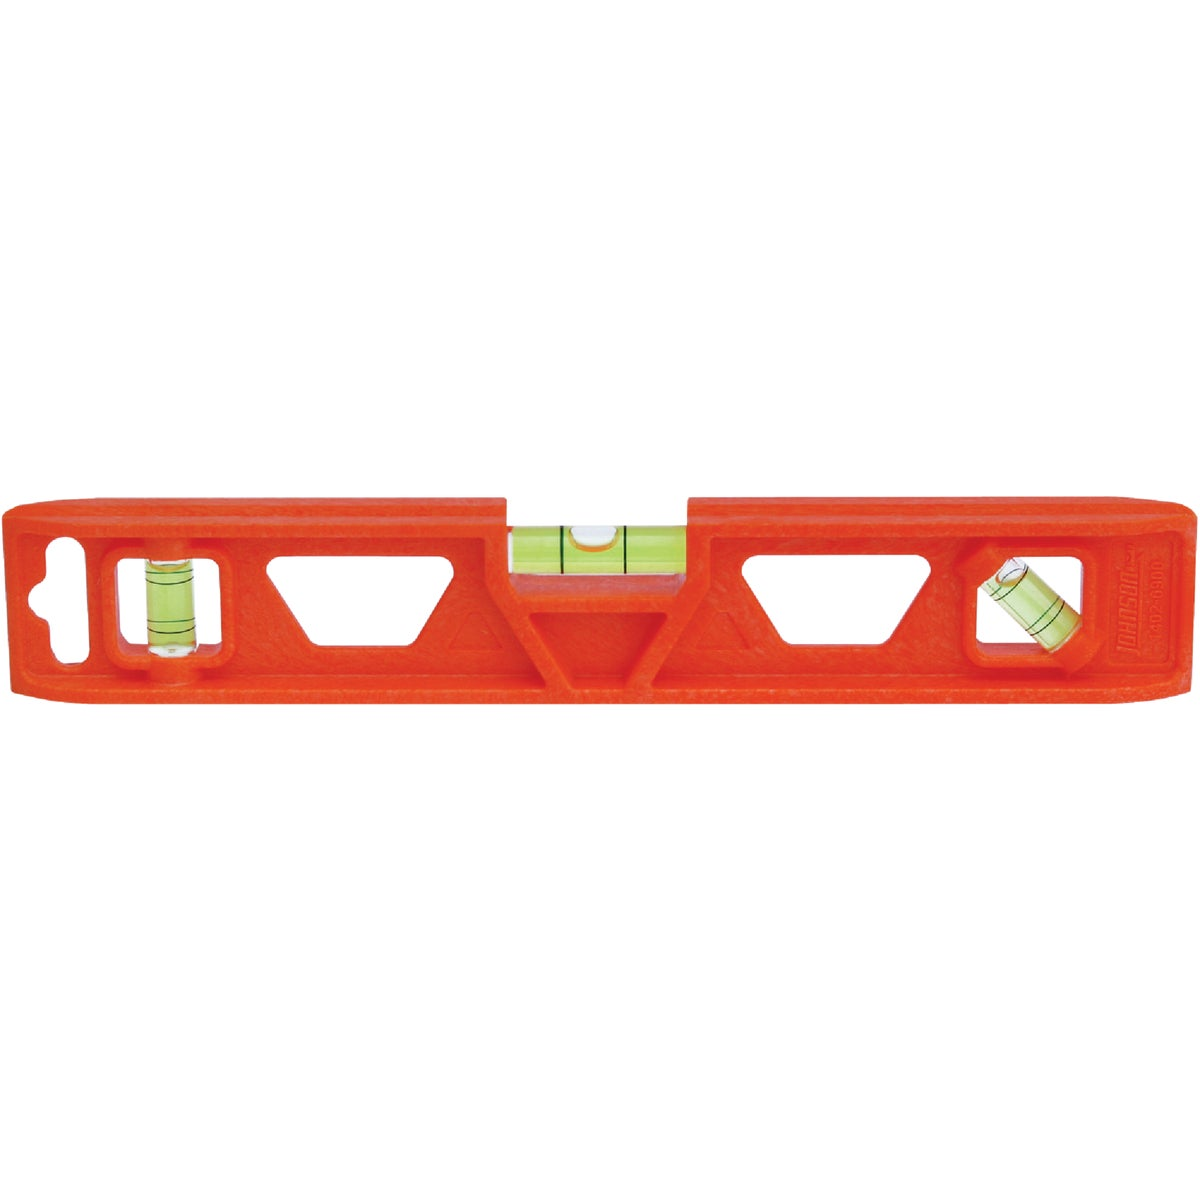 "9"" TORPEDO LEVEL - 1402-0900 by Johnson Level & Tool"